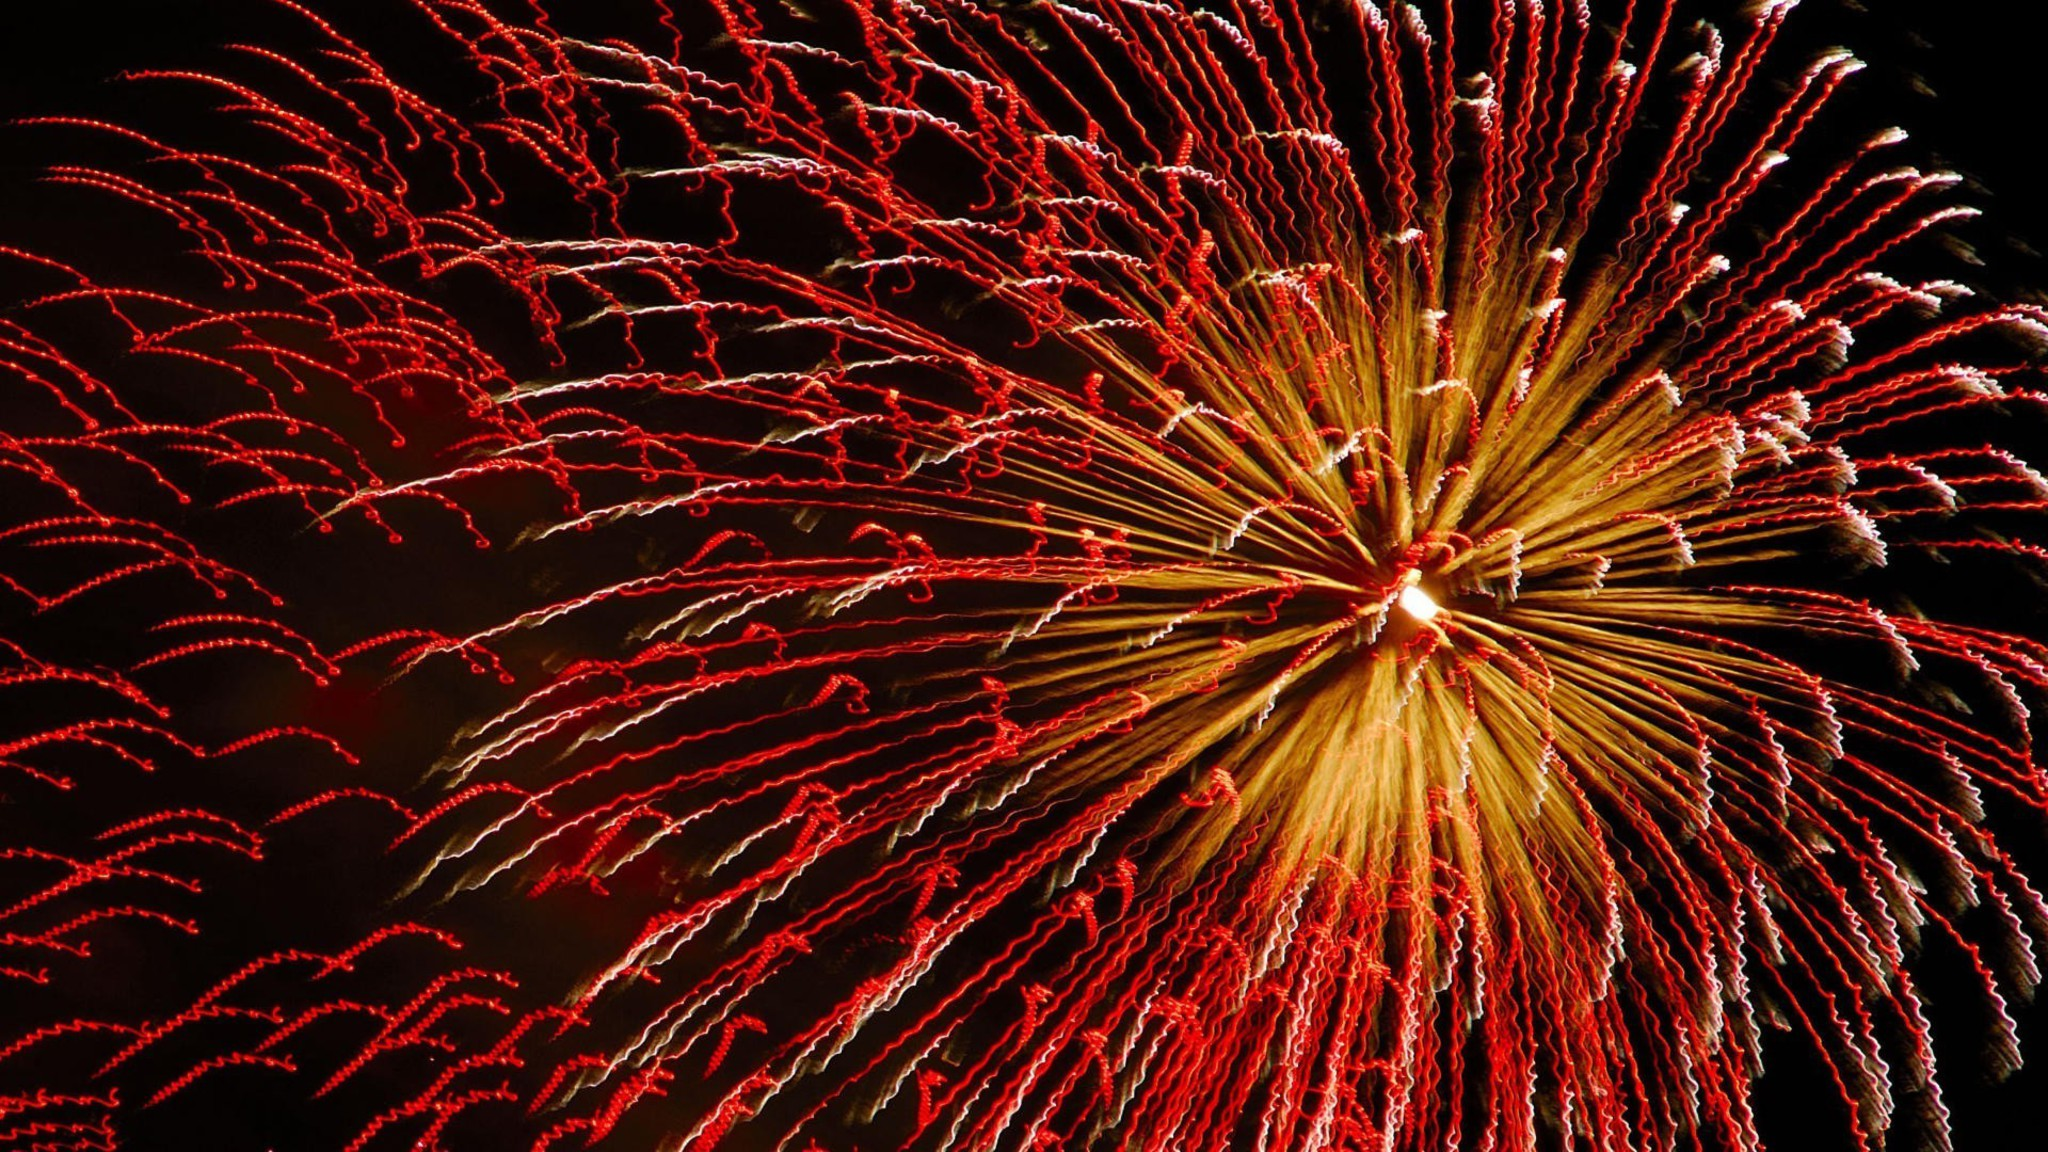 fireworks wallpaper 2048 x 1152 - photo #7